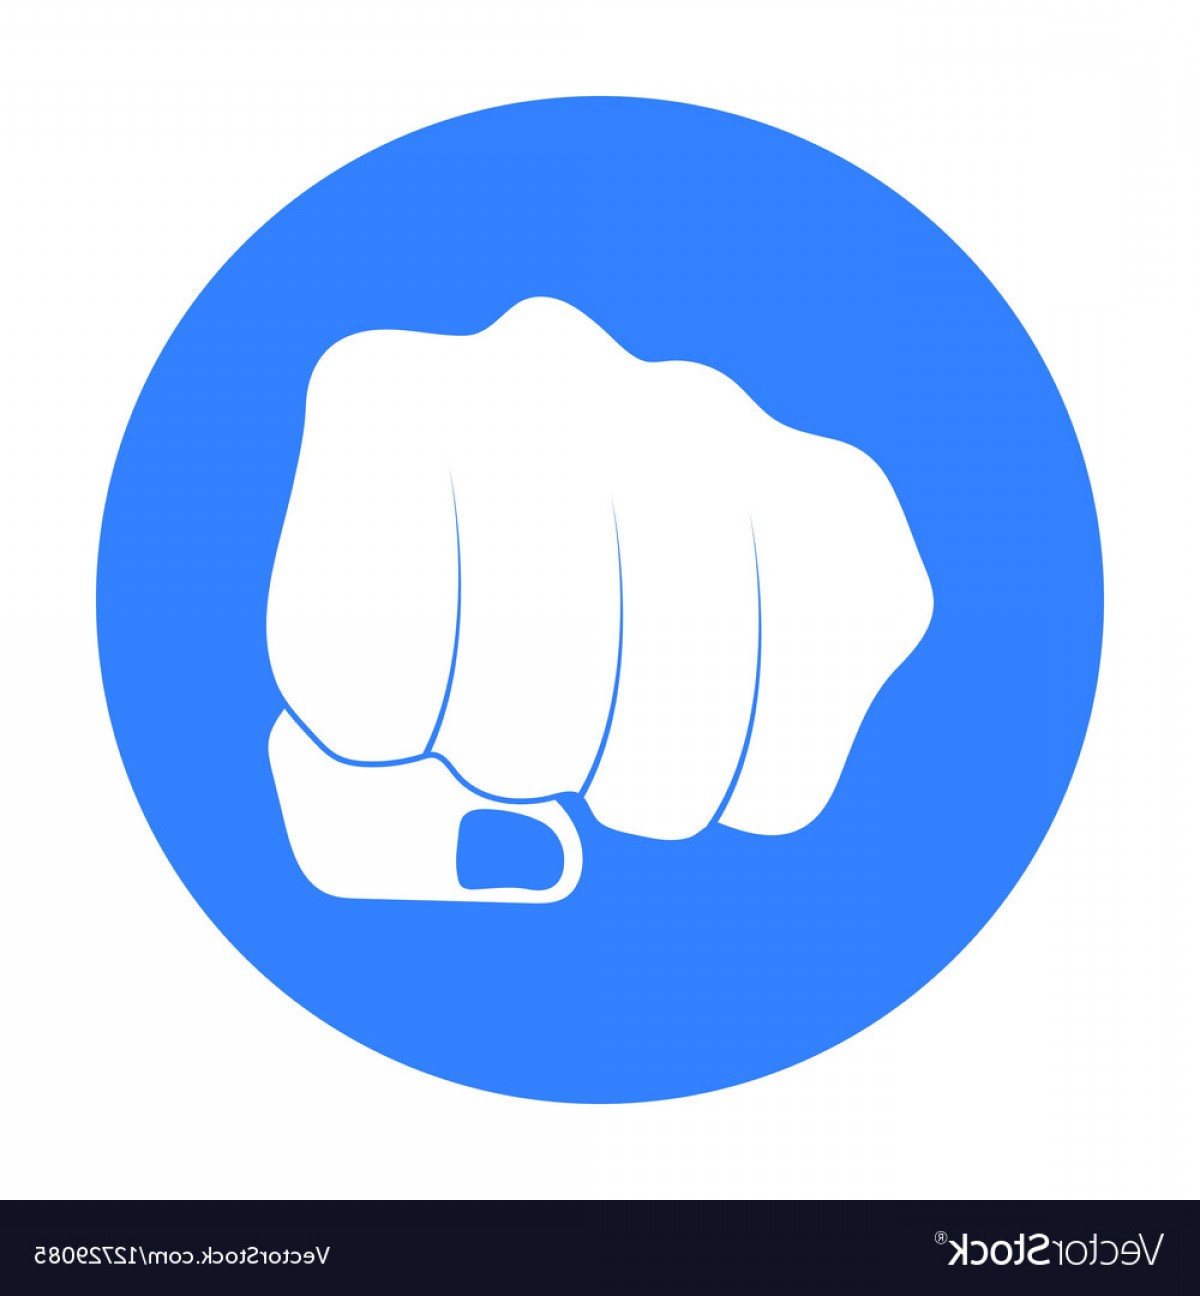 Emoji Fist Bump Vector Graphic: Fist Bump Icon In Black Style Isolated On White Vector